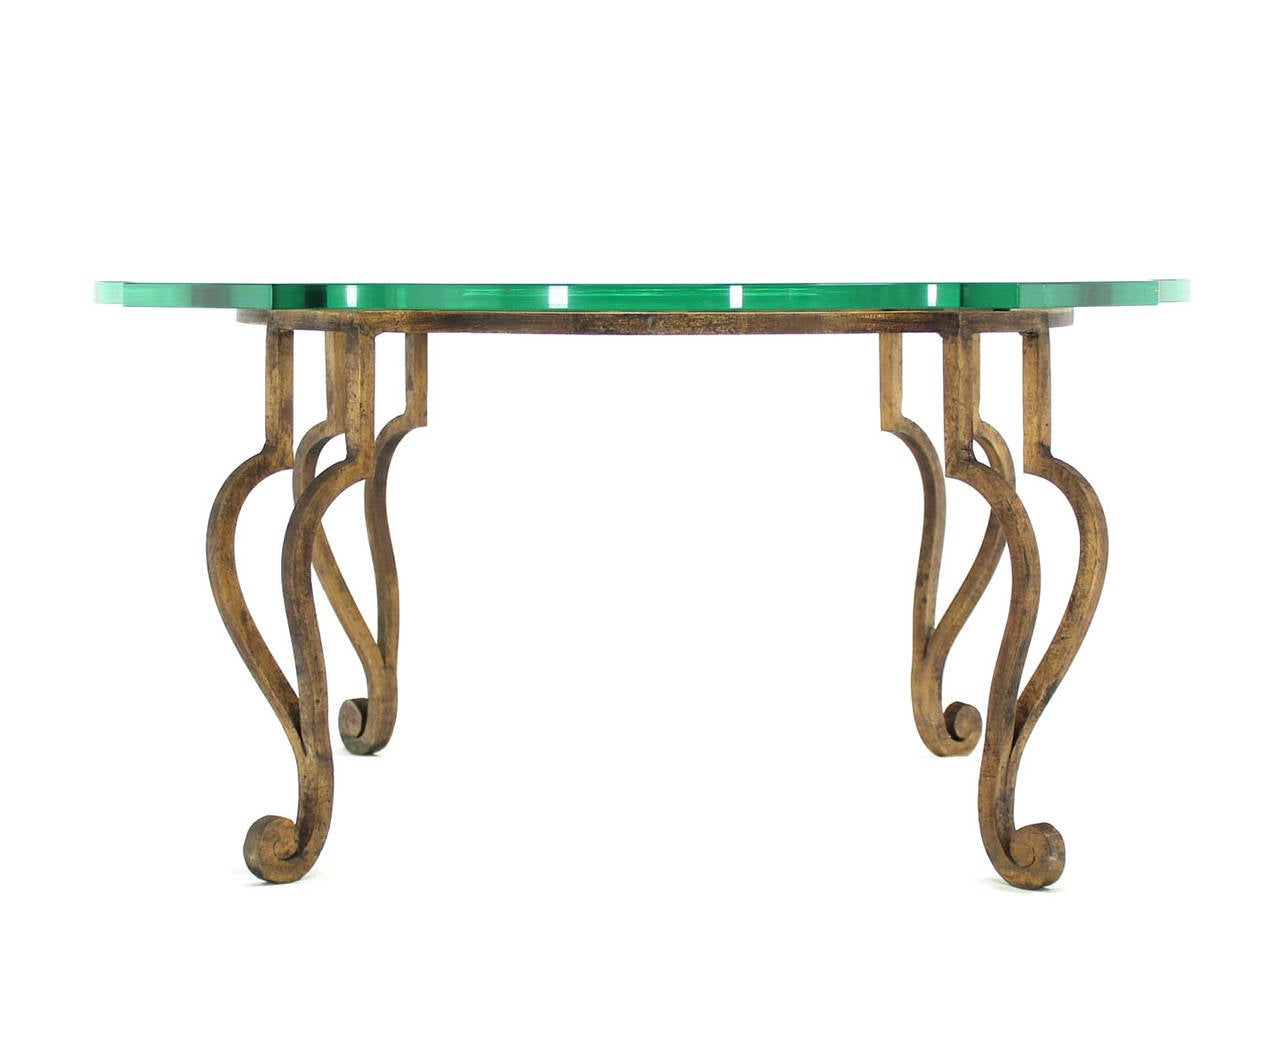 Figural wrought iron base coffee table with thick glass top for sale at 1stdibs Wrought iron coffee table bases